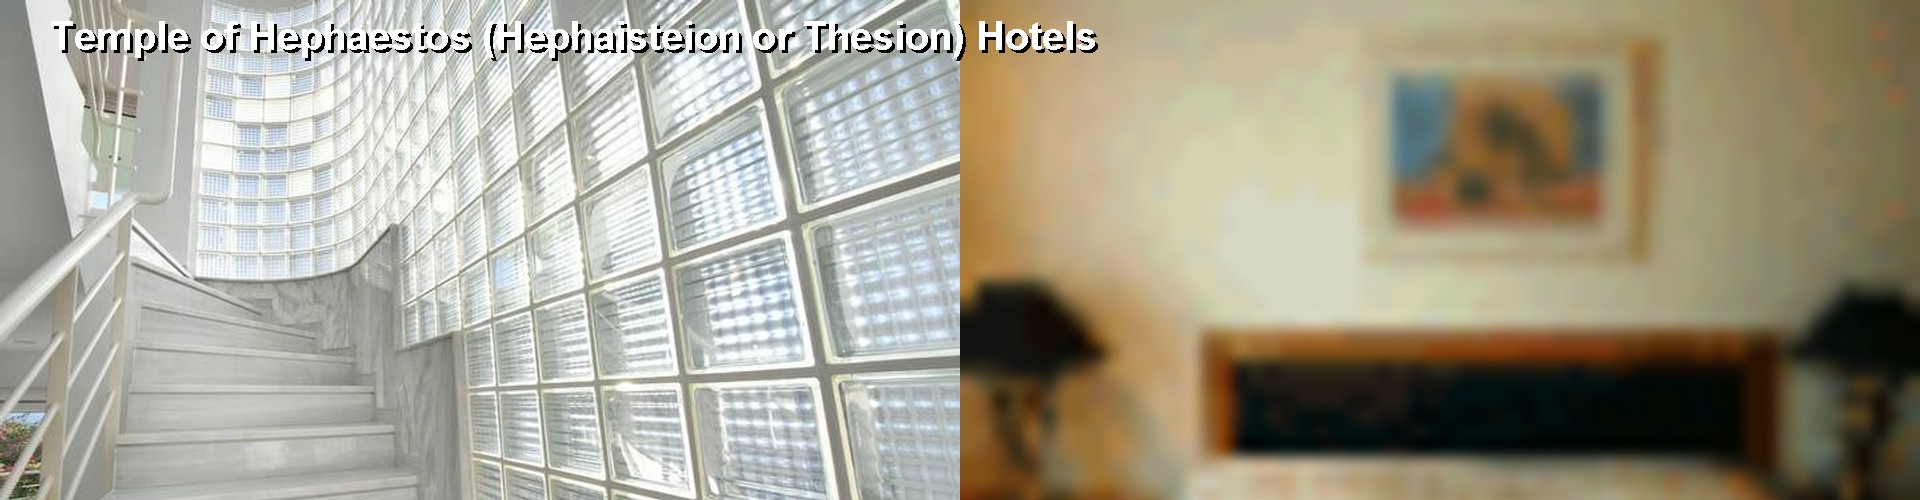 5 Best Hotels near Temple of Hephaestos (Hephaisteion or Thesion)